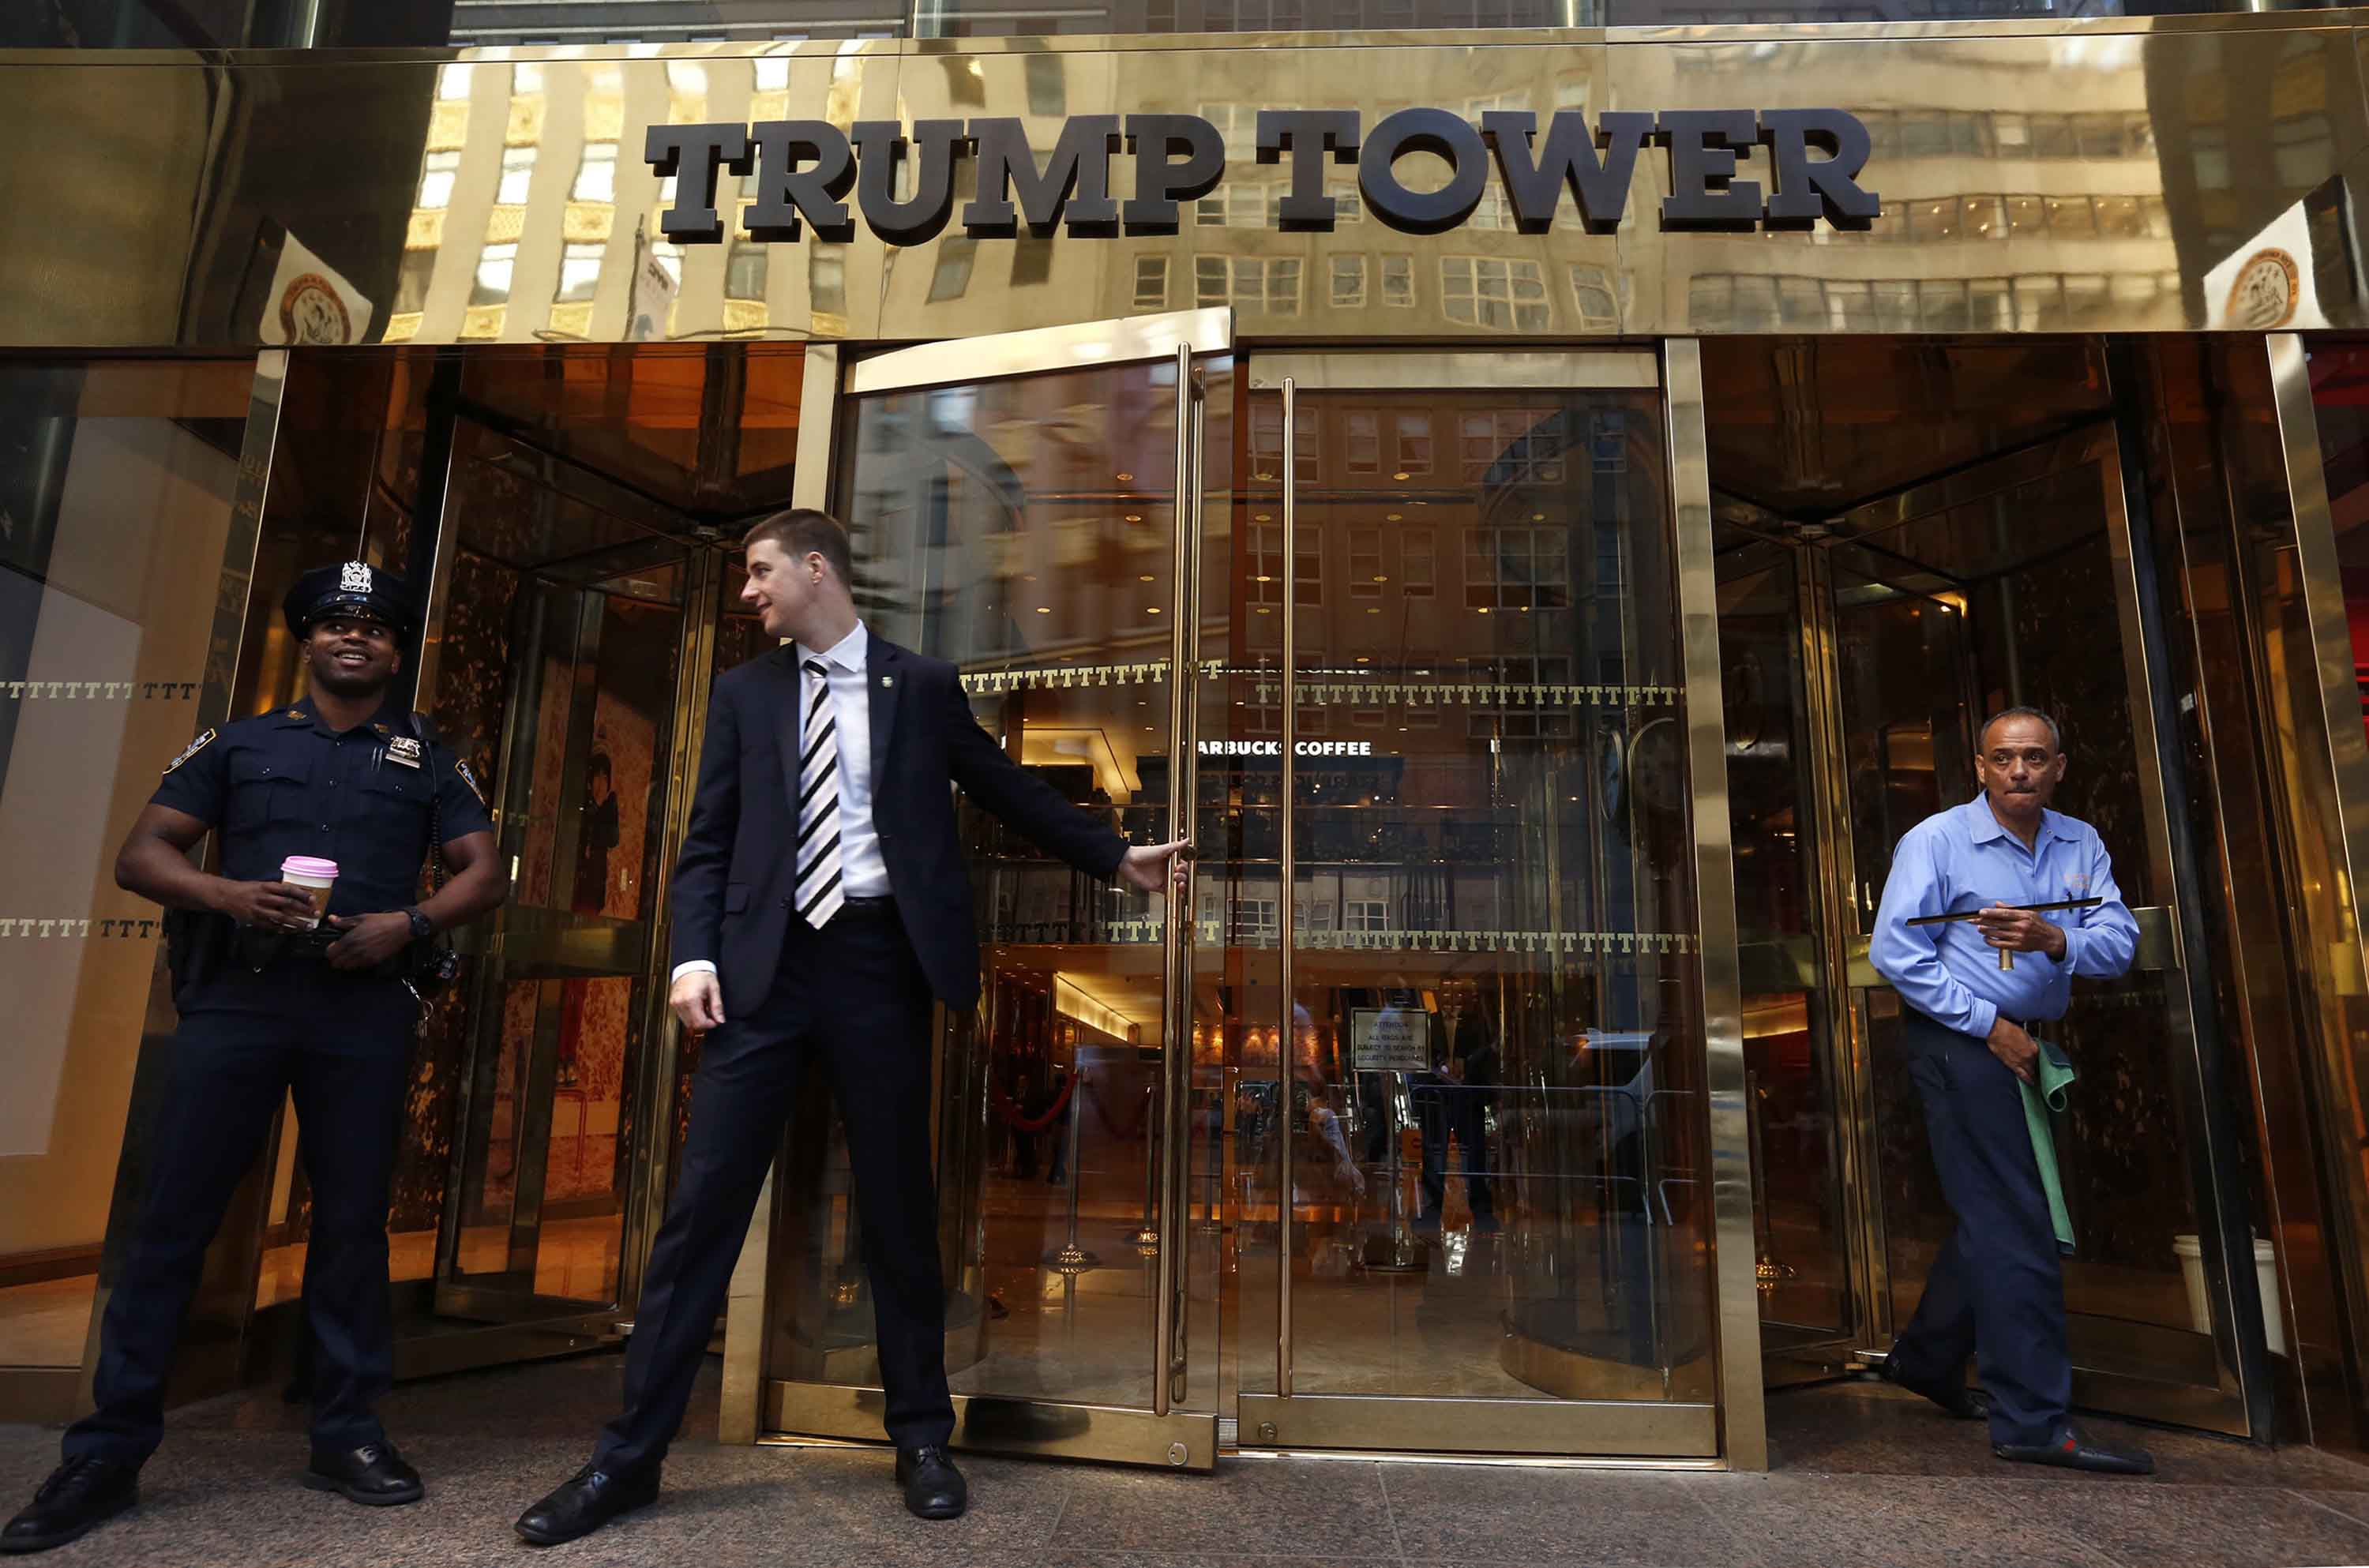 Trump Tower at 56th St. and 5th Ave. in New York is headquarters for the Trump campaign.  (Carolyn Cole/Los Angeles Times/TNS)